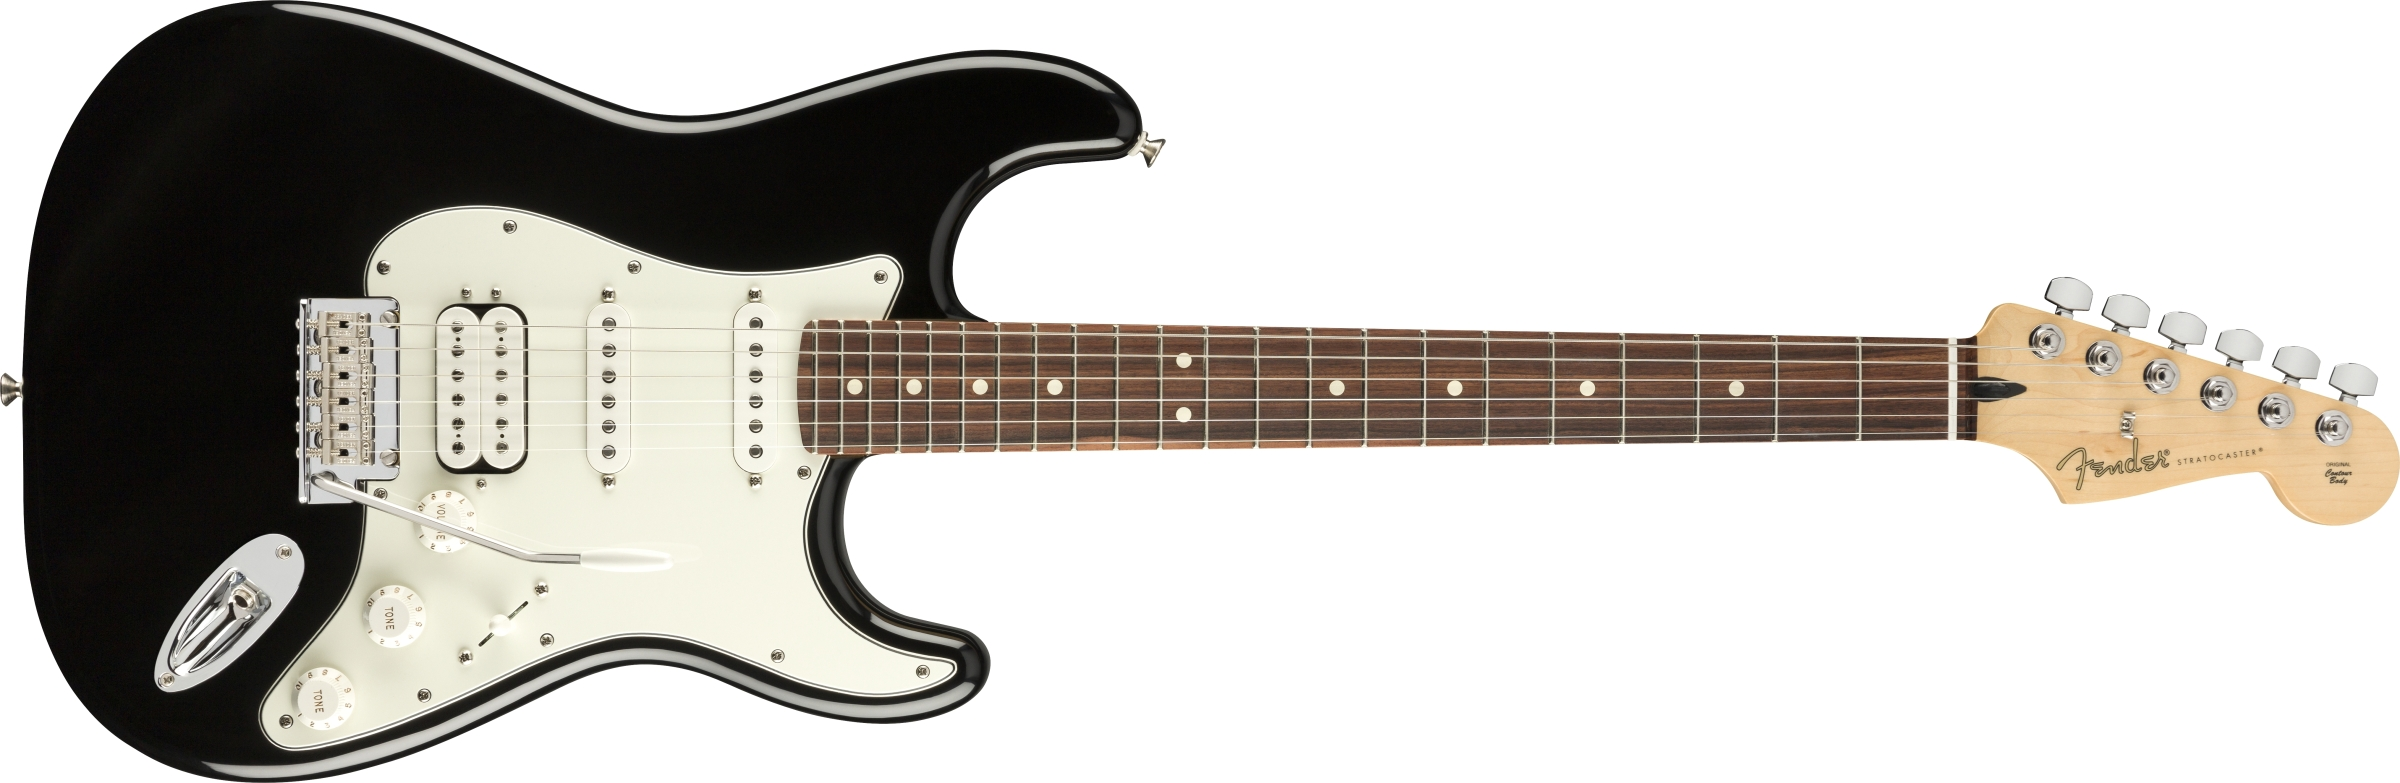 squier hss strat wiring diagram player stratocaster   hss electric guitars  player stratocaster   hss electric guitars